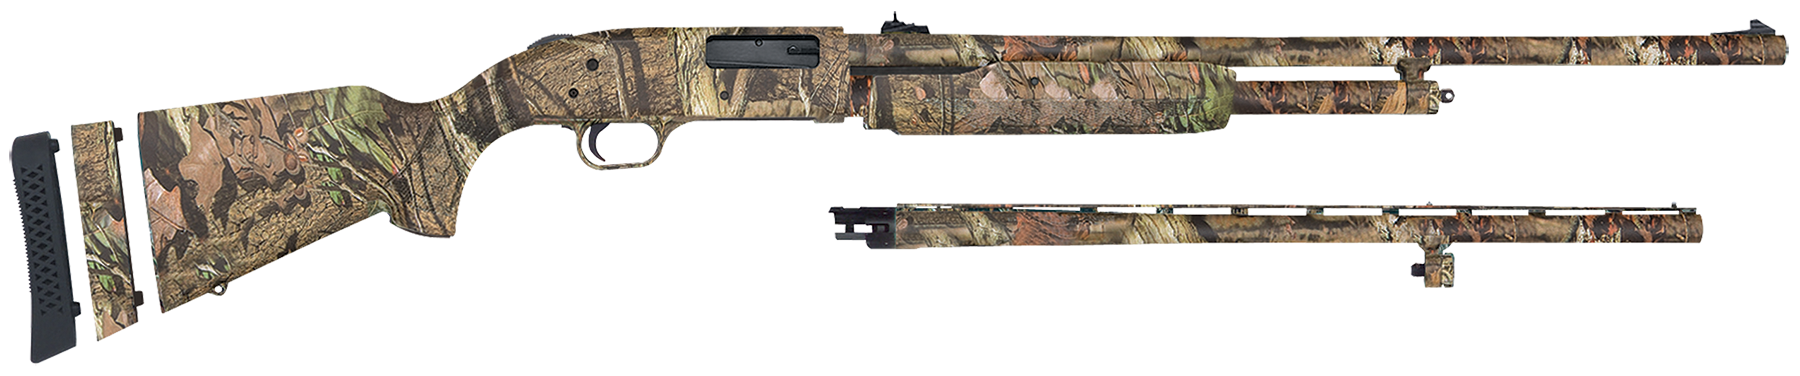 Mossberg 54145 500 Super Bantam Combo Pump  20 Mossy Oak Break-Up Infinity